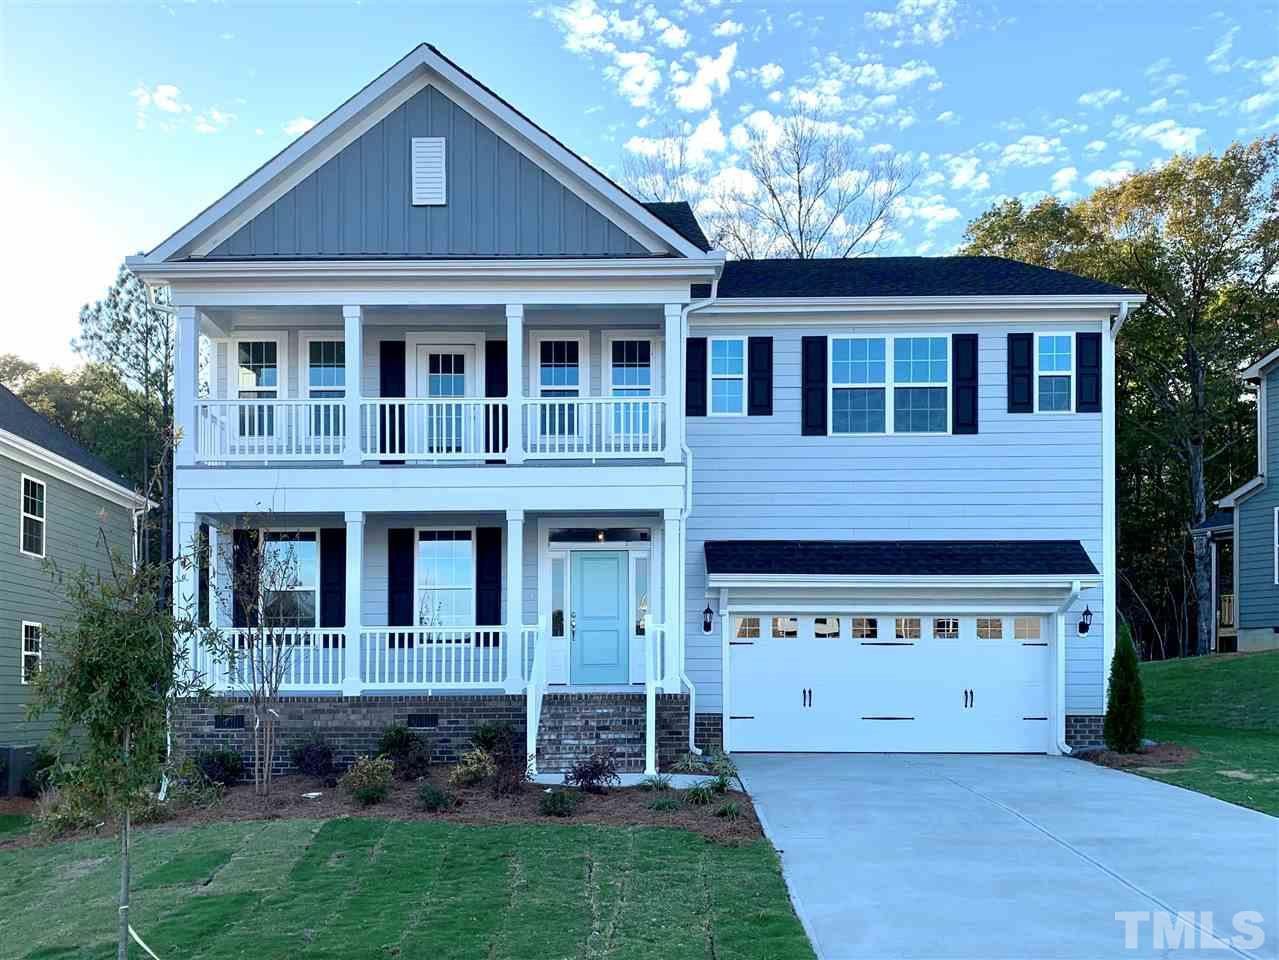 Price of home will adjust once design upgrades are added to home. Just in time to customize!  Home has a lovely souther charm feel with the double front porch! 50 Home sites plus great builder incentives!